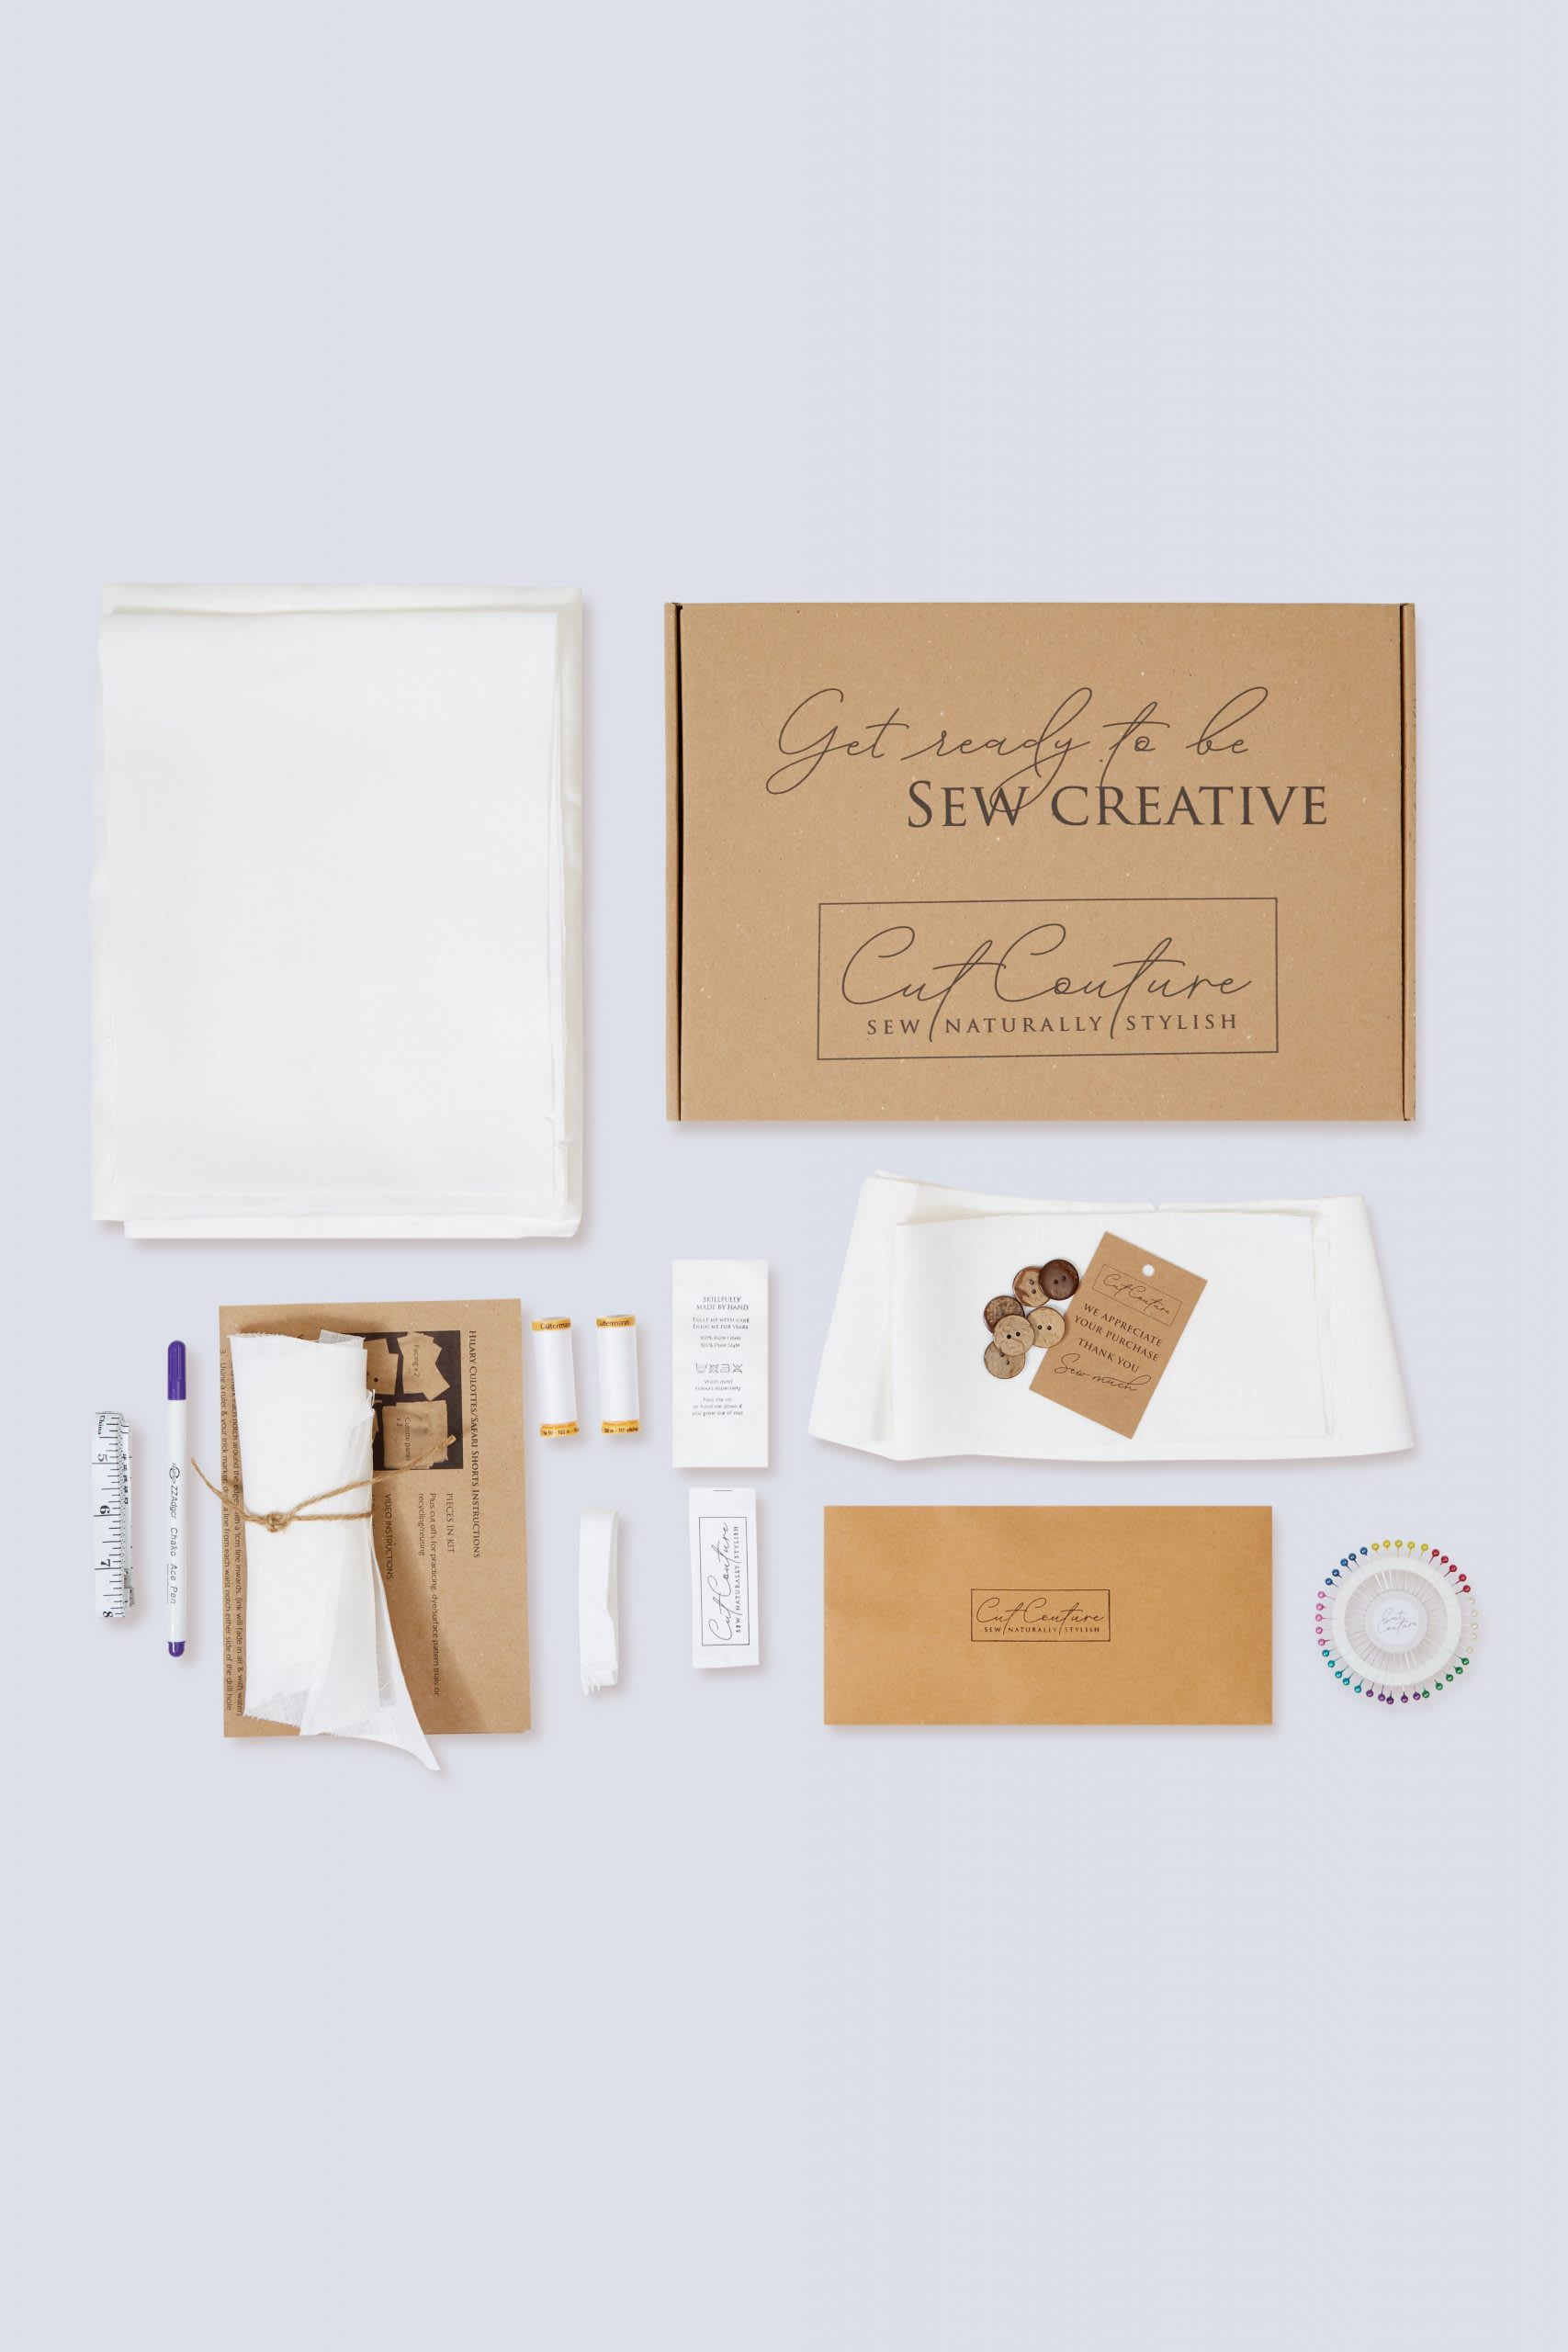 Cut Couture Hilary culottes sewing kit contents and packaging